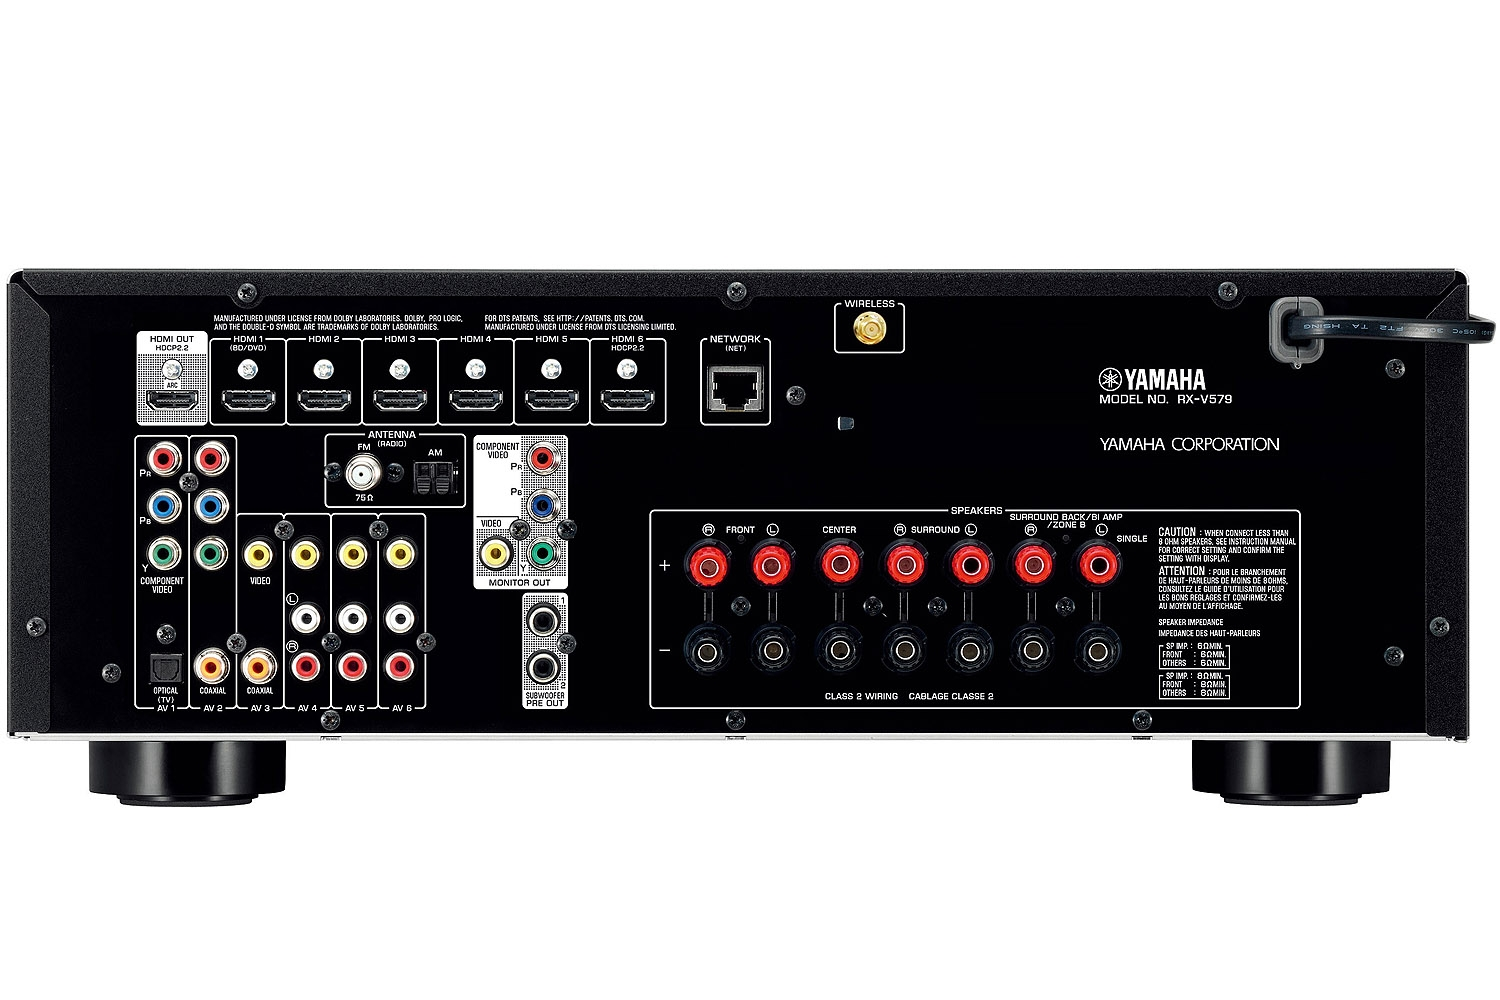 Yamaha rx v579 7 2 channel black a v receiver for Yamaha receiver accessories